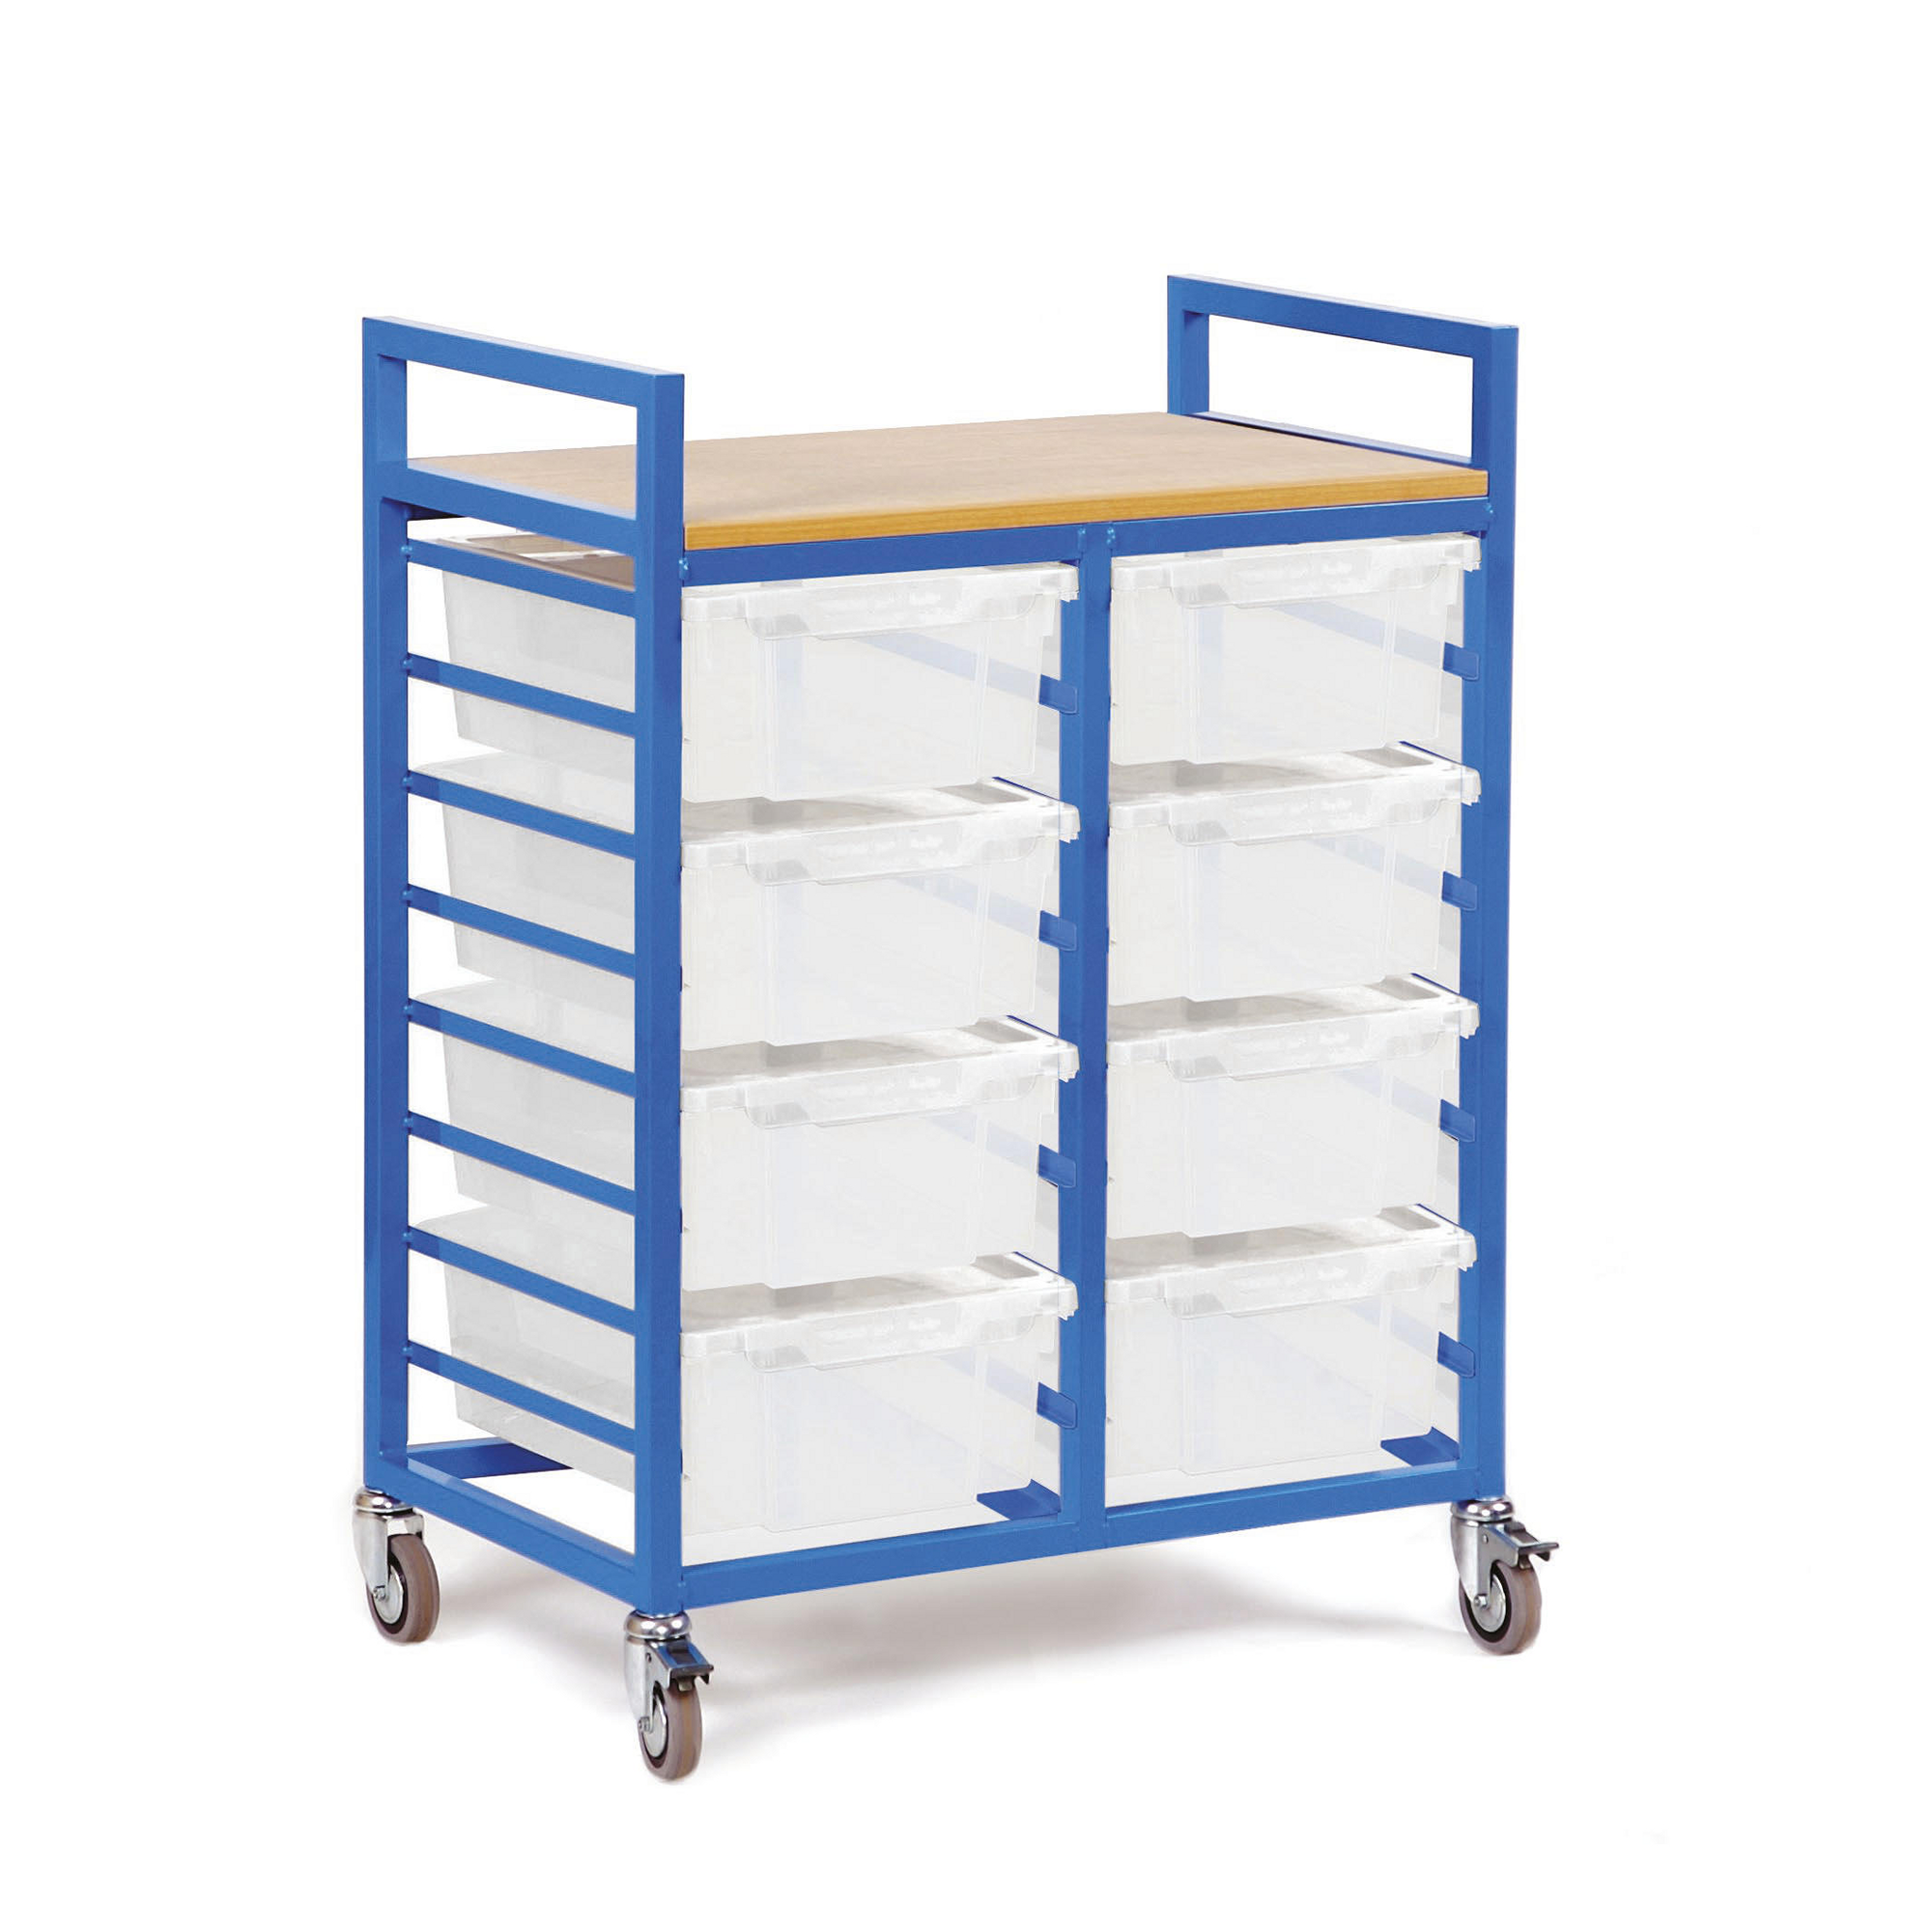 A Frame Trolley Storage Trolley With Trays Blue Frame